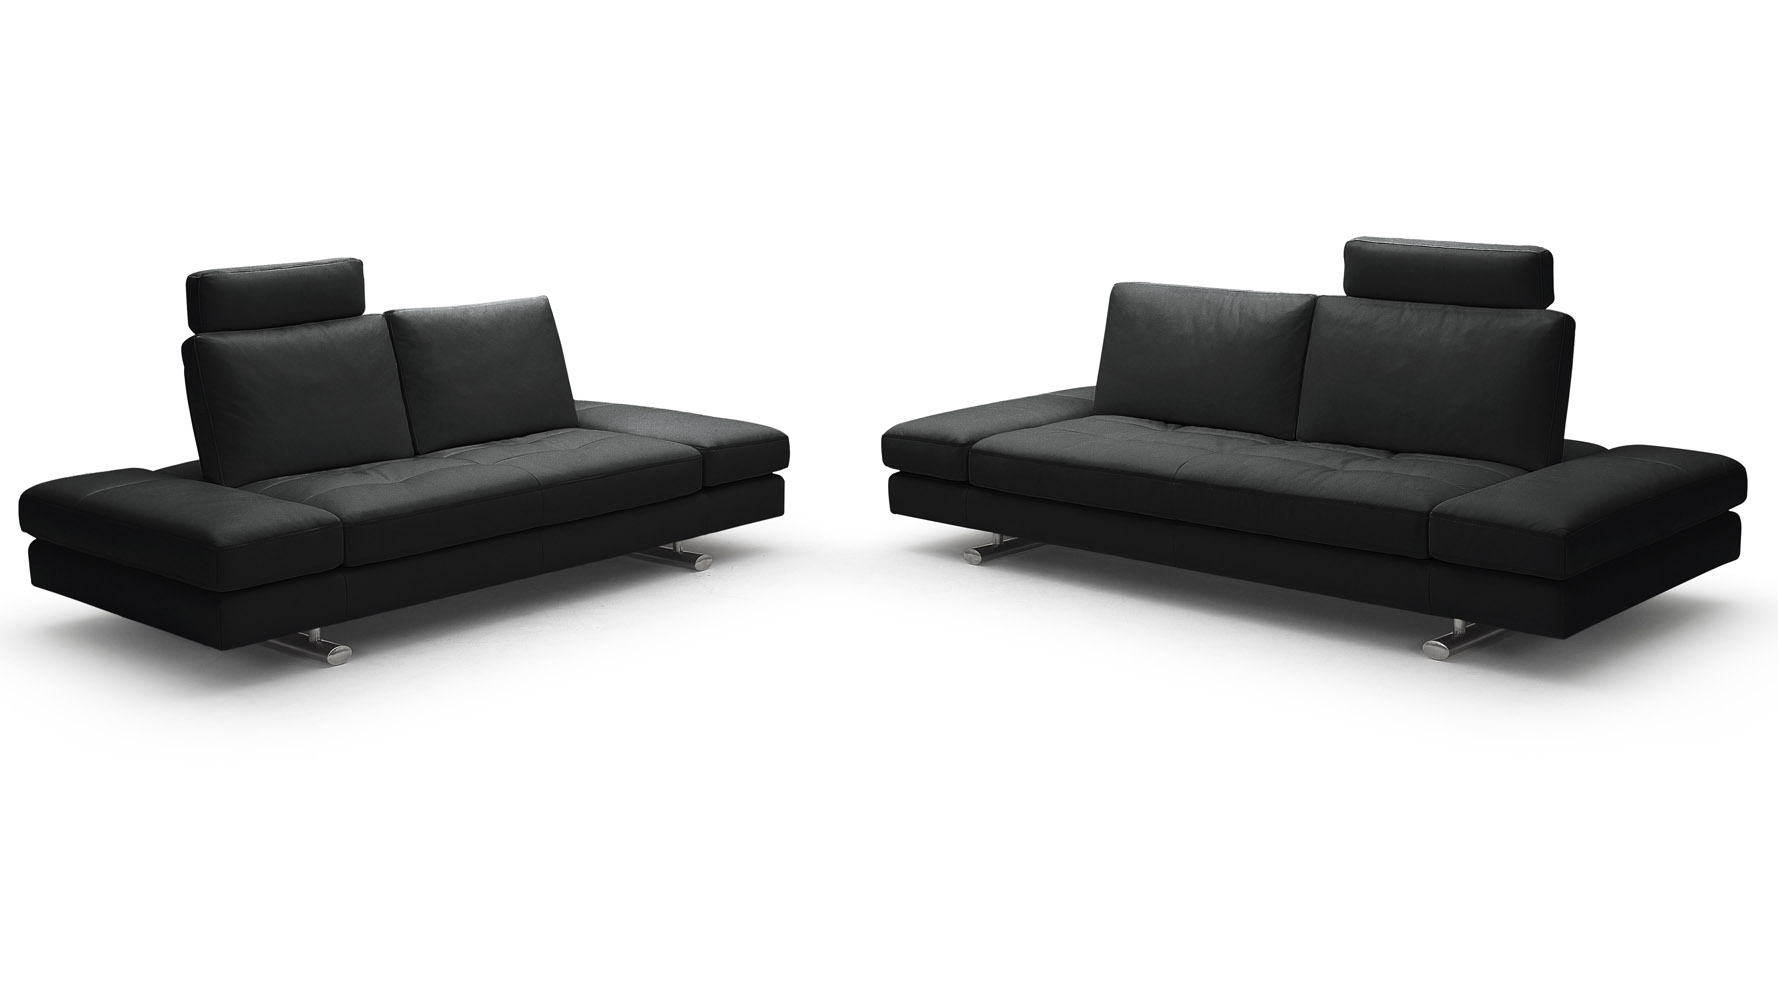 Black leather sofa and loveseat set black leather sofa and loveseat set steal a furniture thesofa Loveseat black